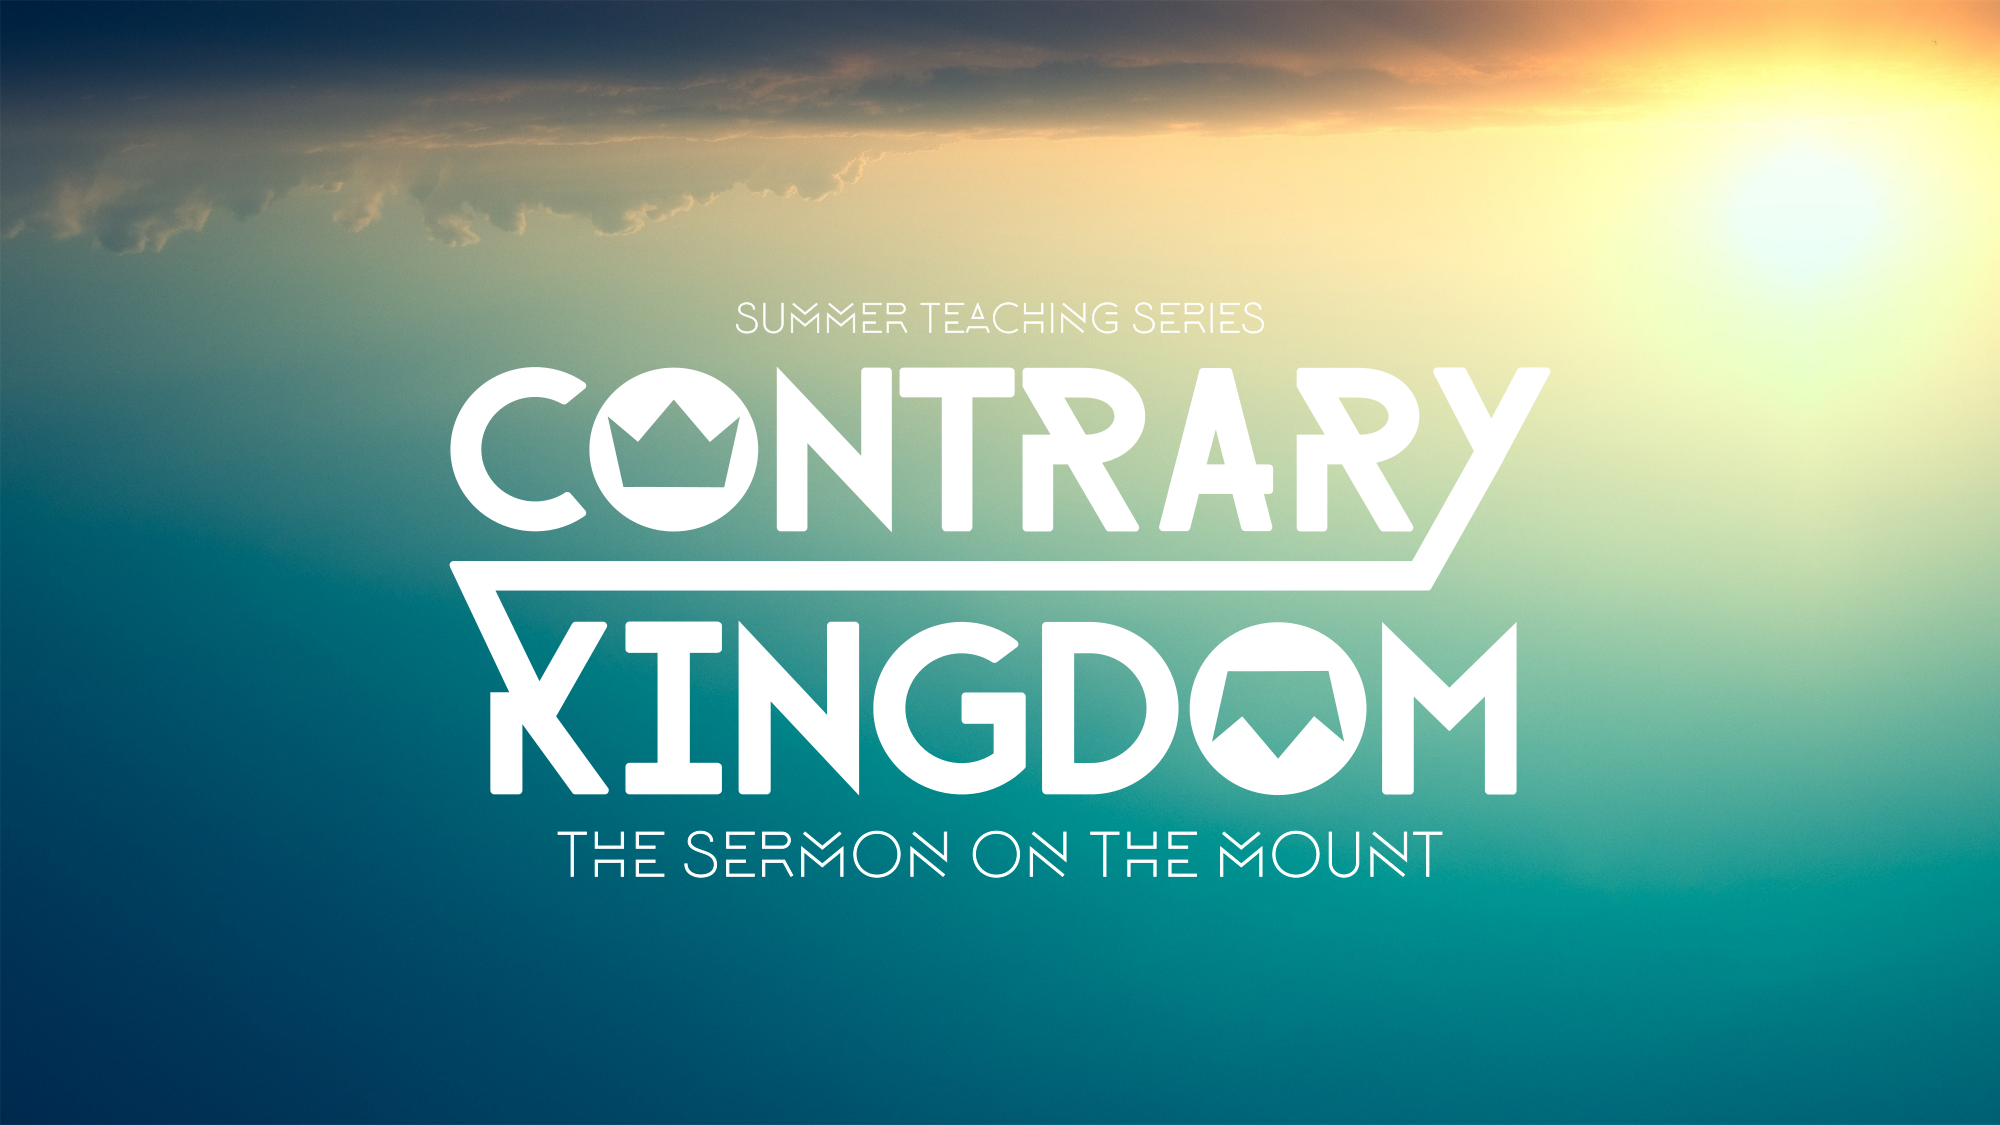 The Sermon on the Mount    June 2016 - August 2016